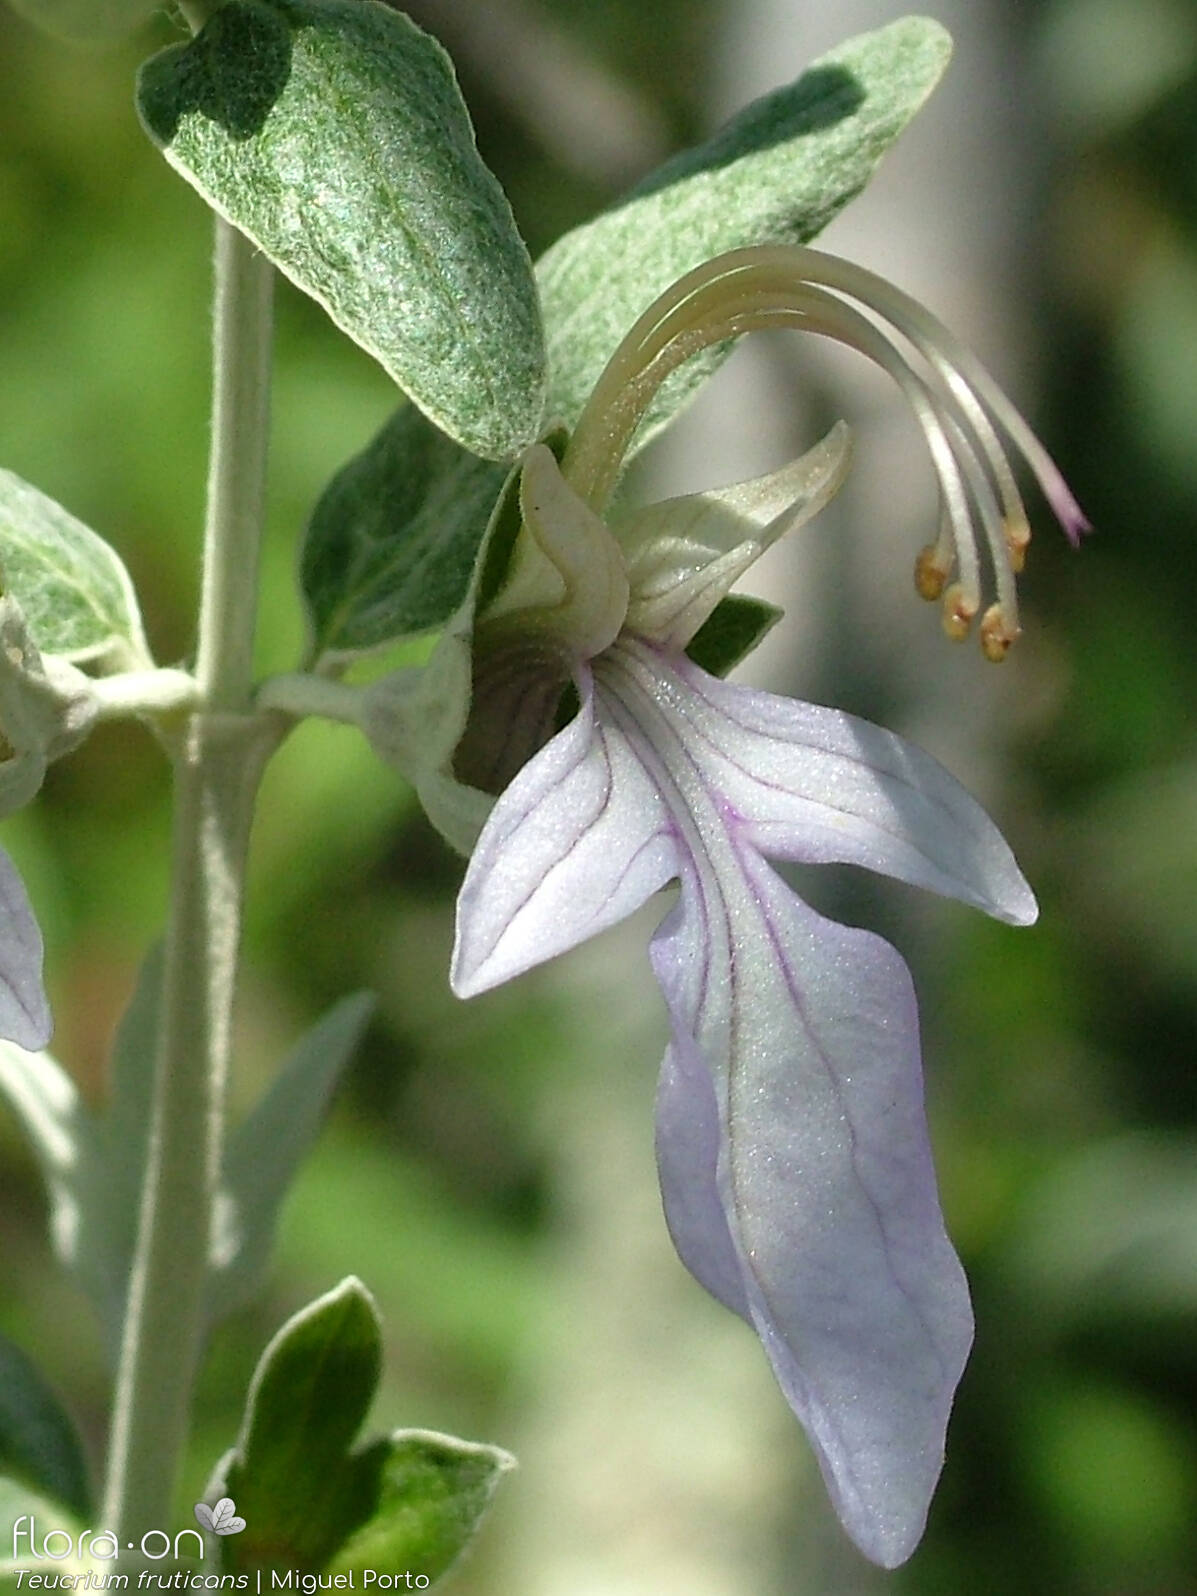 Teucrium fruticans - Flor (close-up) | Miguel Porto; CC BY-NC 4.0